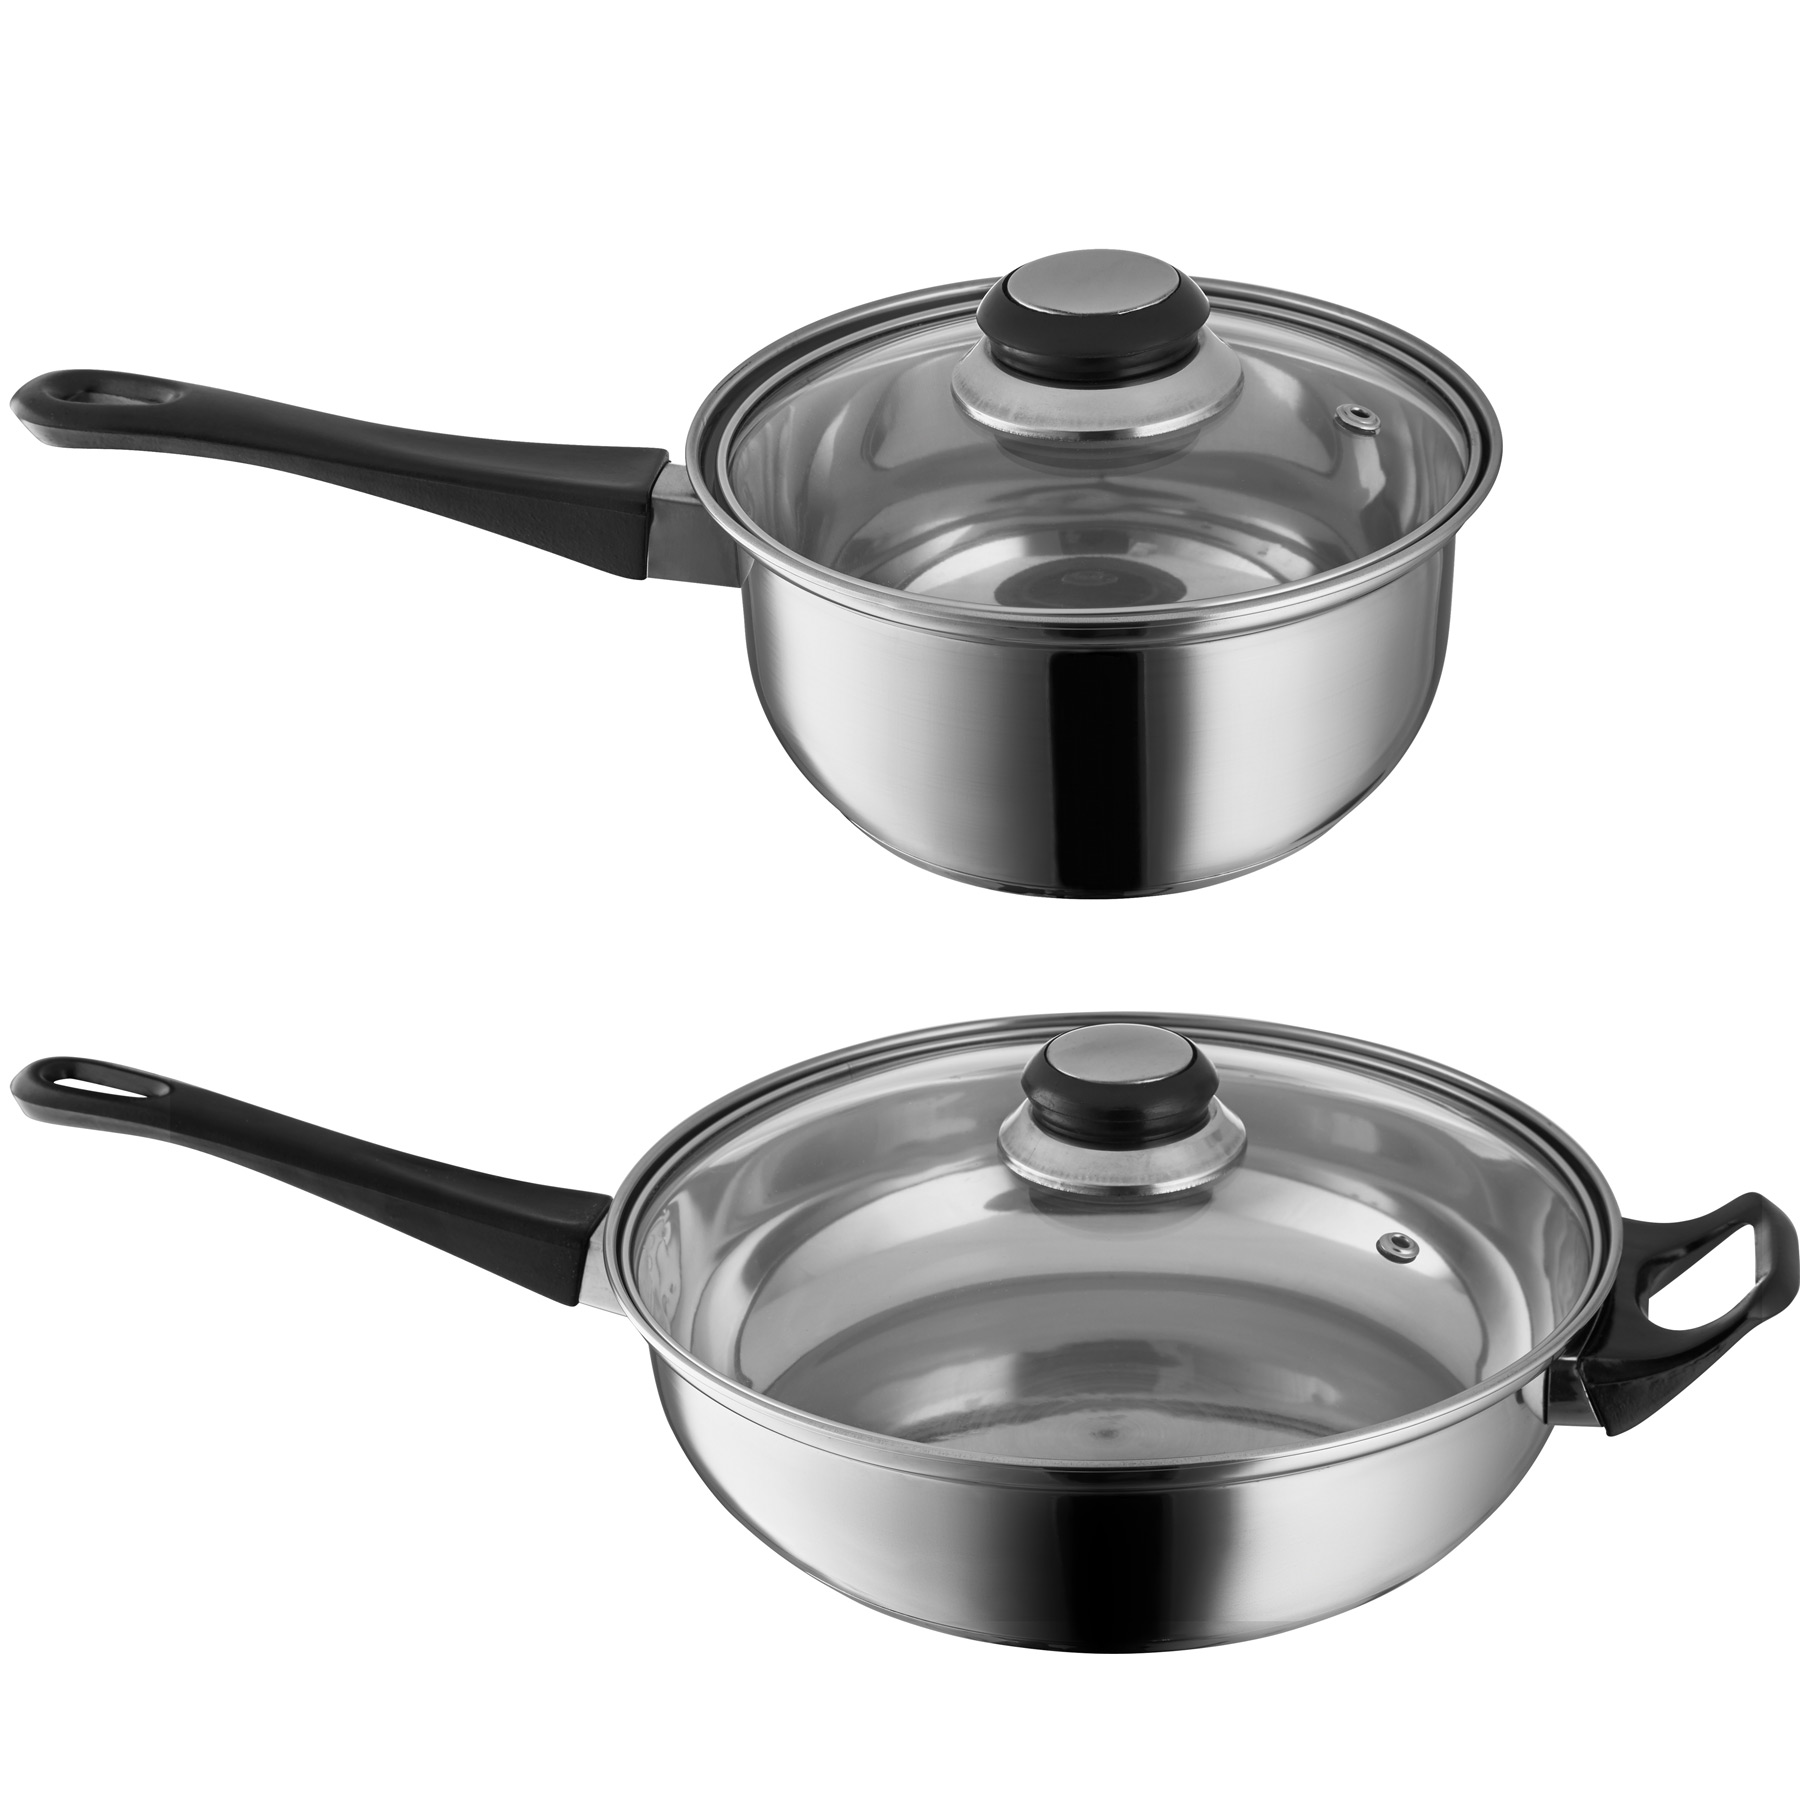 12 piece stainless steel cooking pots lids frying pan cooking pot set saucepan ebay. Black Bedroom Furniture Sets. Home Design Ideas